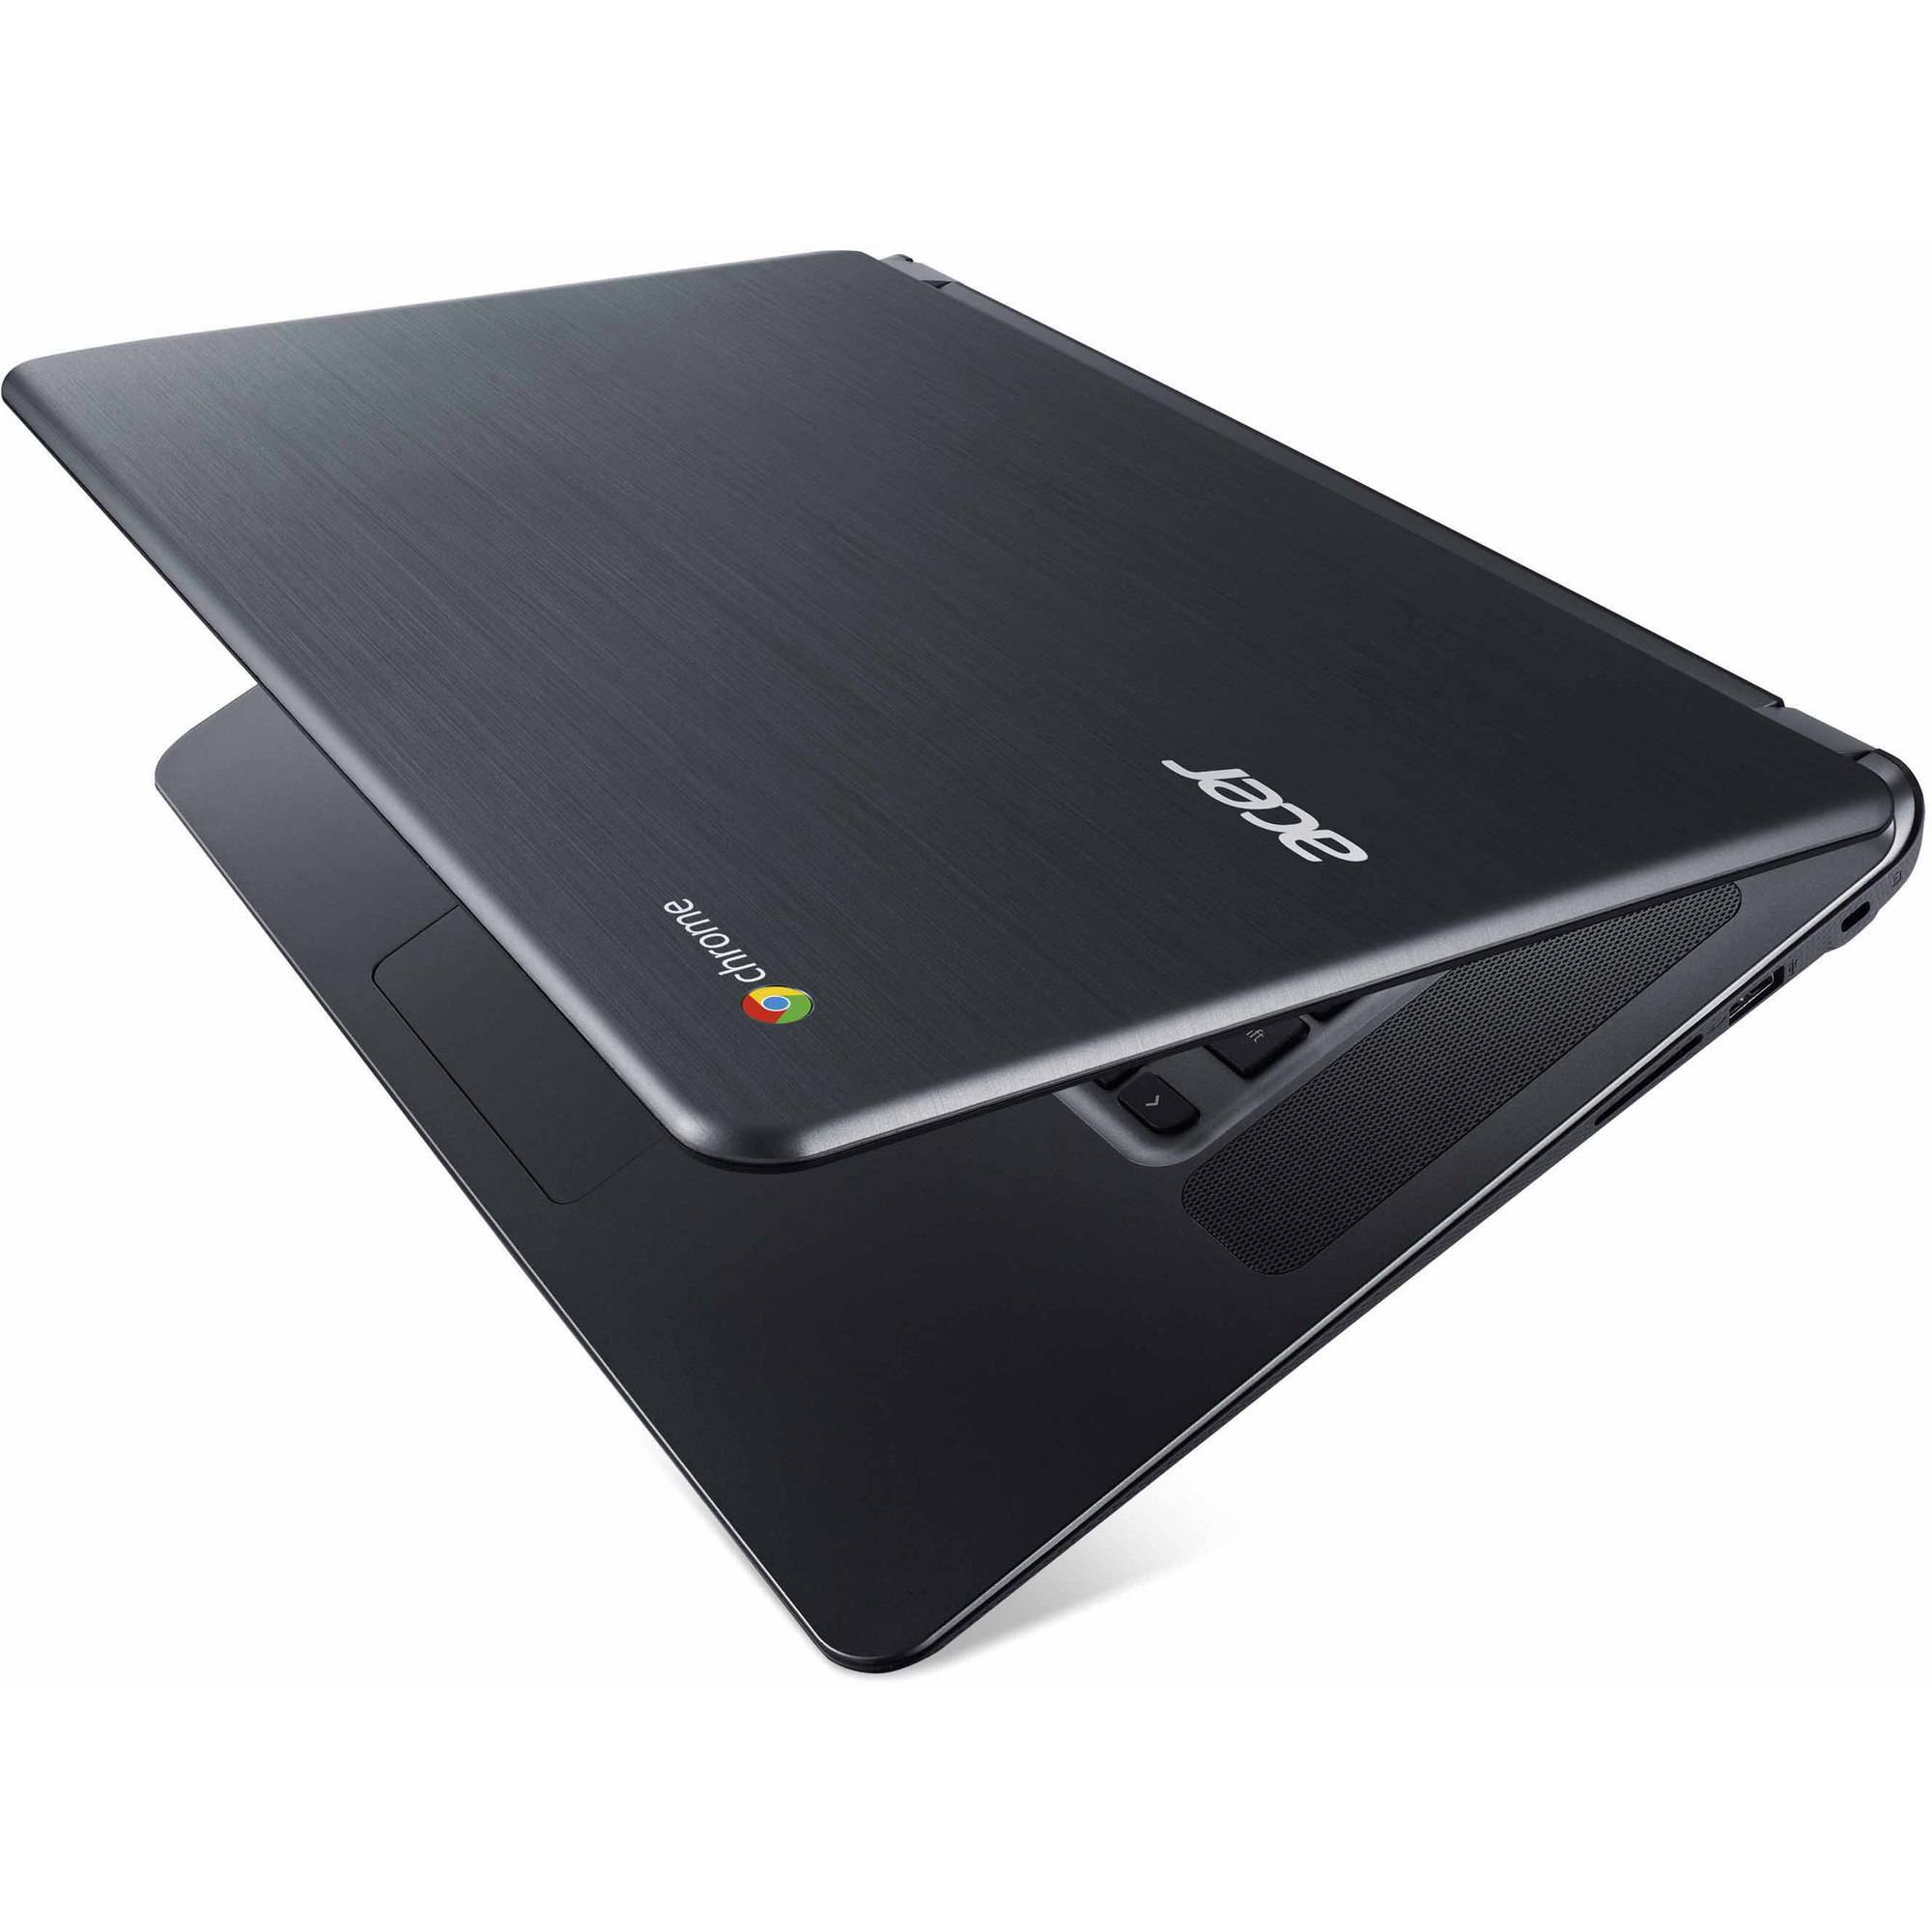 Acer Granite Gray 15 6 Cb3 531 C4a5 Chromebook Pc With Intel